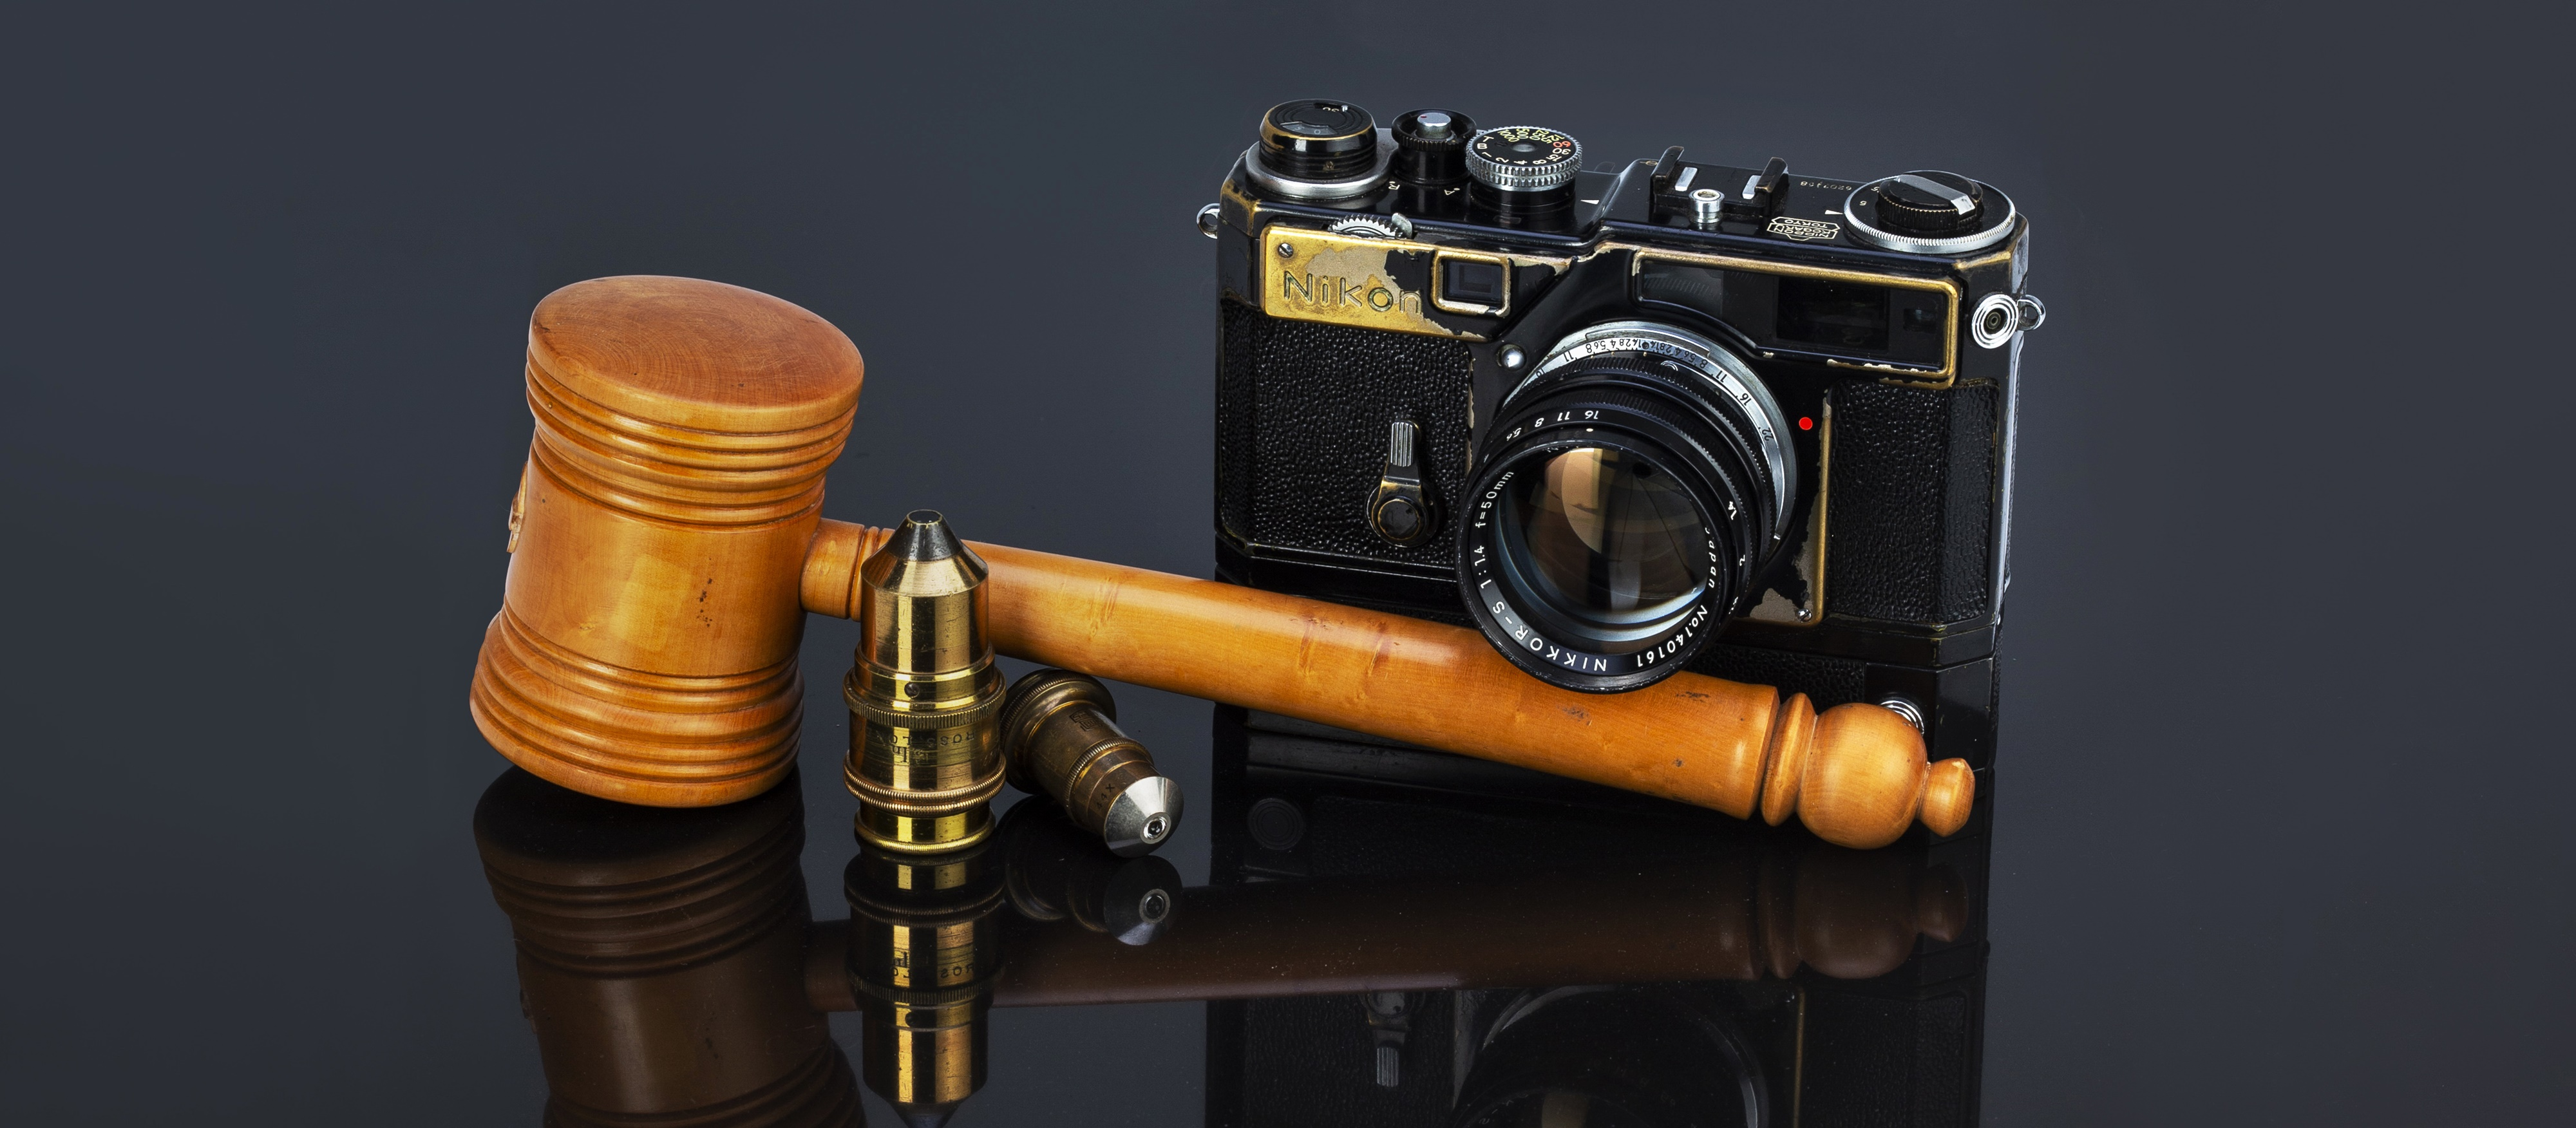 A auctioneers gavel and a Nikon SP Rangefinder Camera with black paint sit on black reflective material, with two brass microscope objective lenses forming part of the arangement